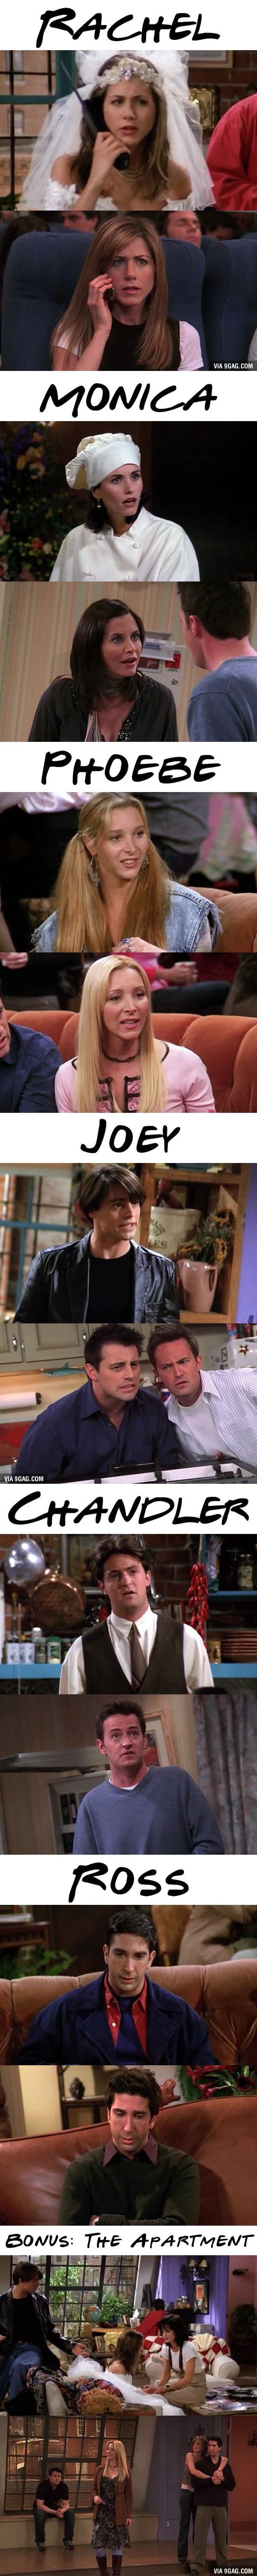 The Cast Of Friends On The First Episode (1994) Vs. The Last Episode (2004)